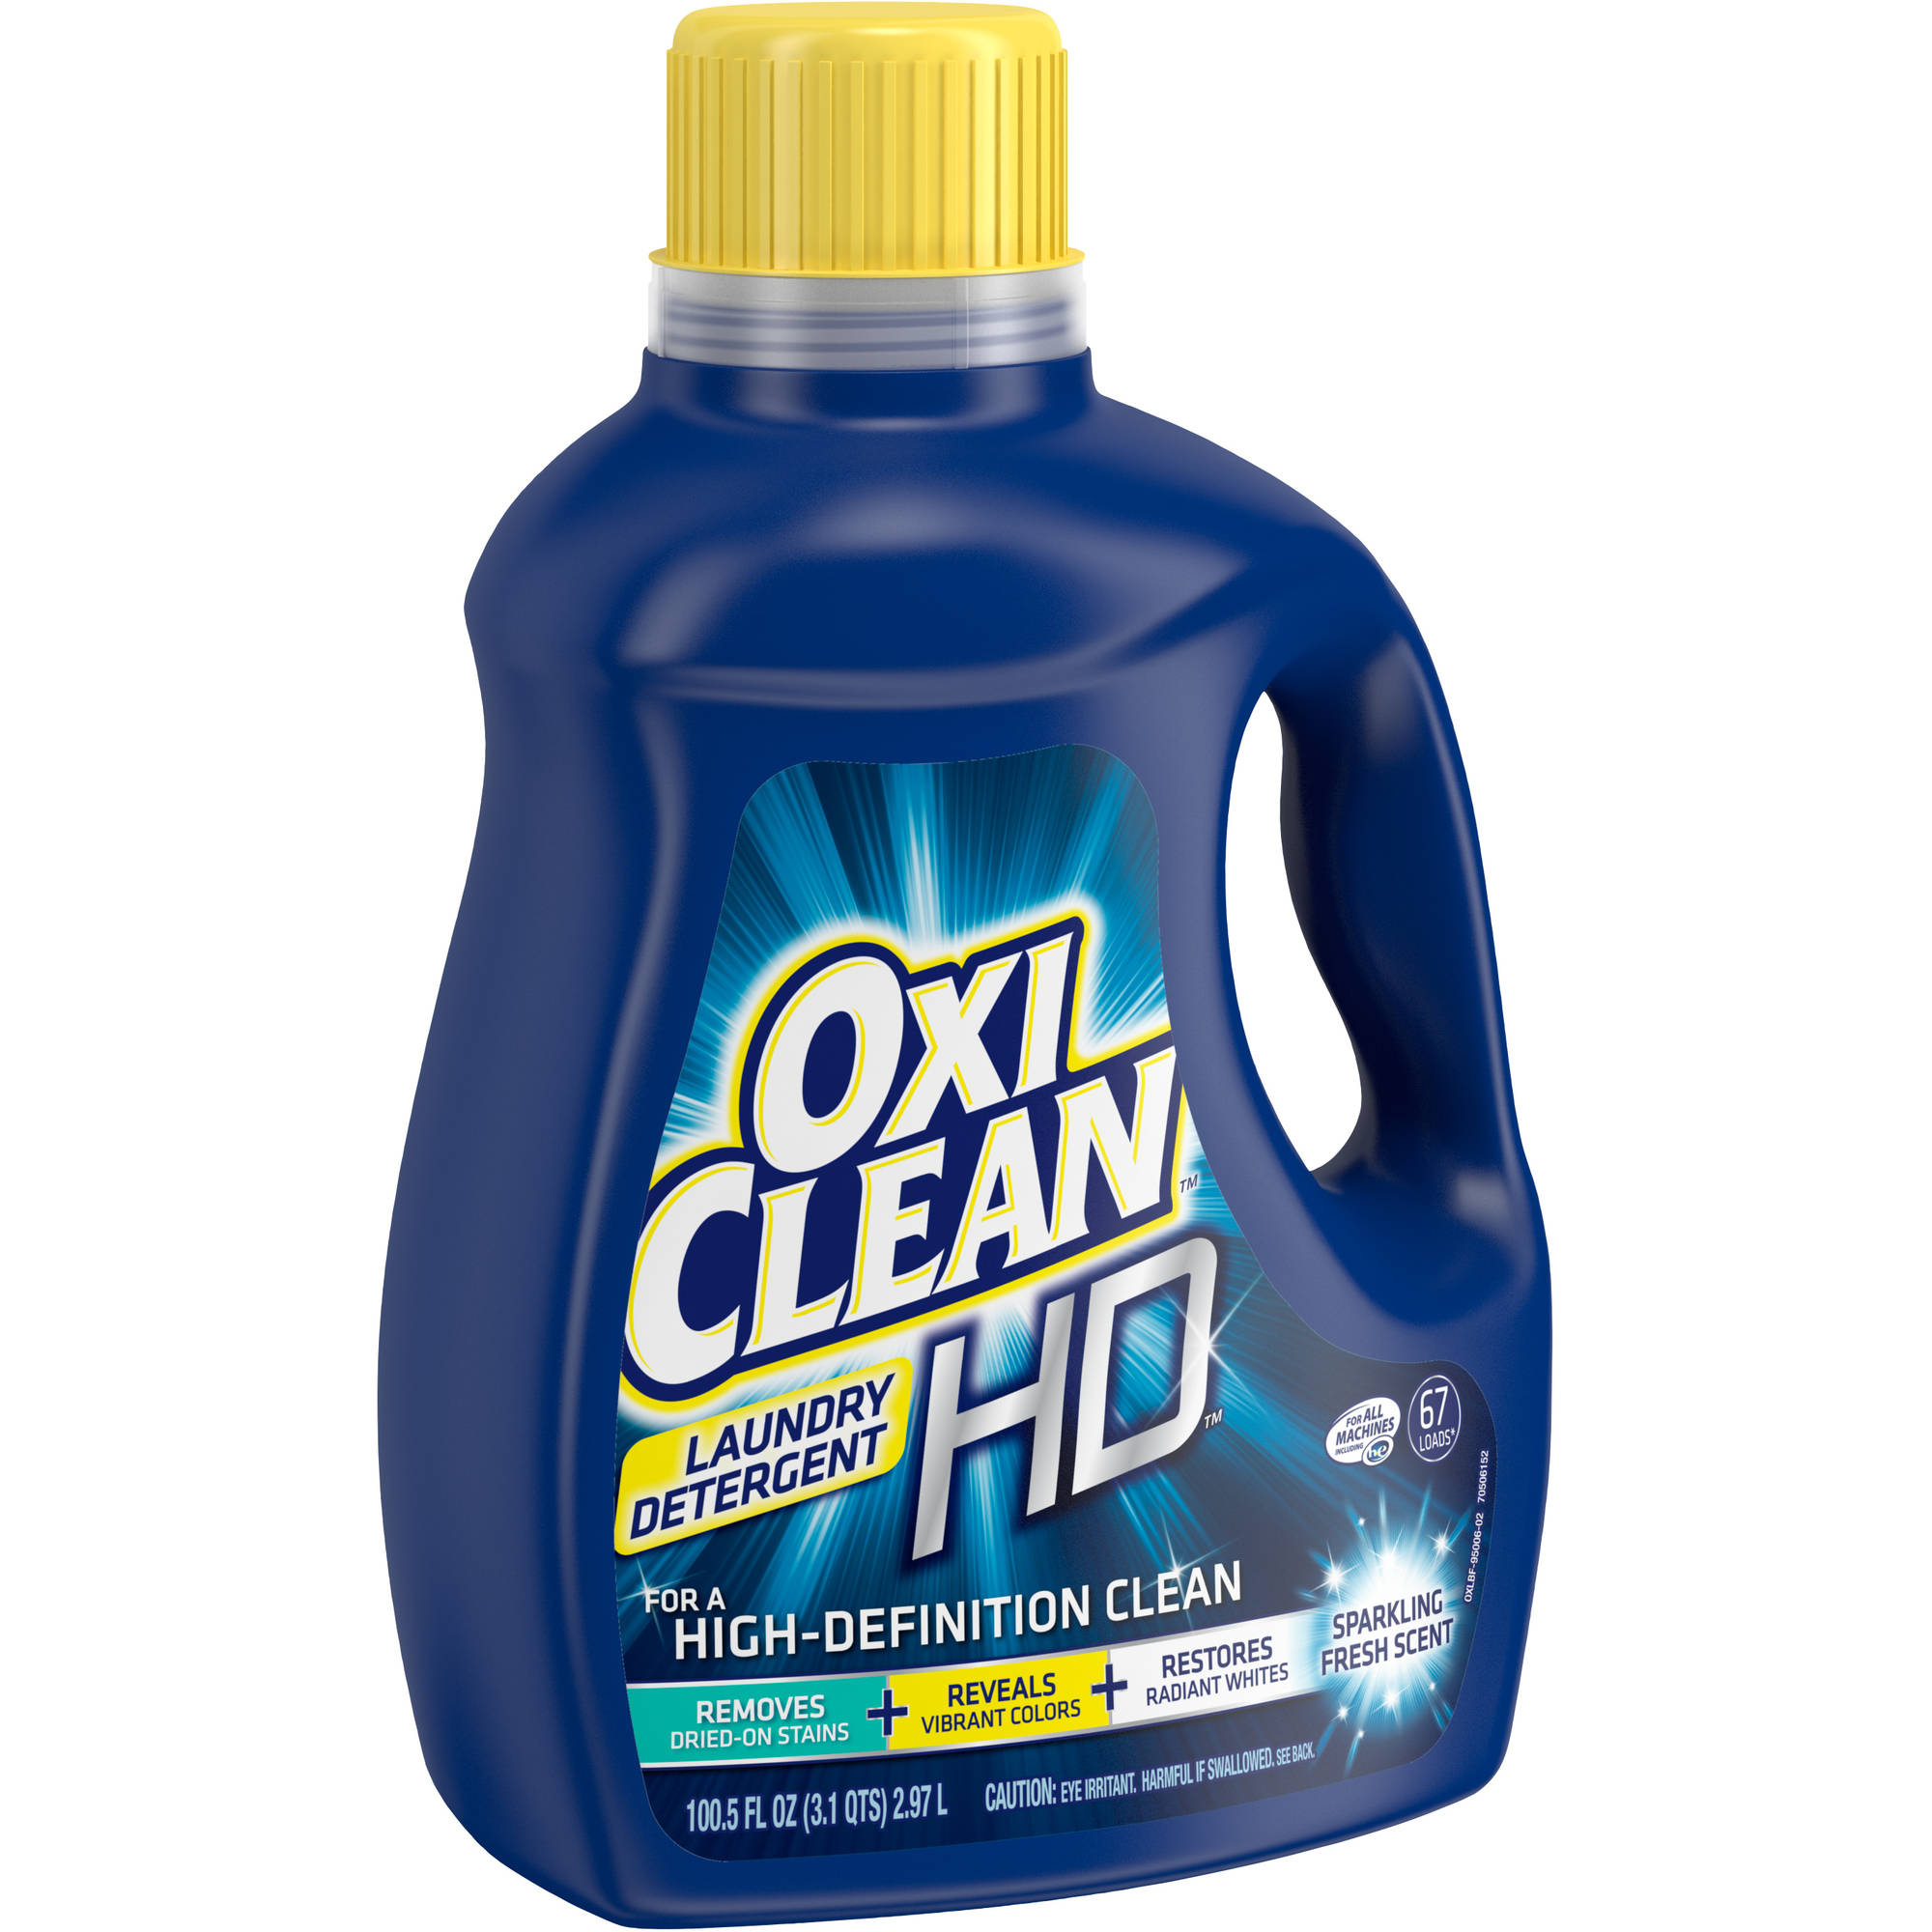 OxiClean HD Sparkling Fresh Scent Liquid Laundry Detergent, 100.5 fl oz